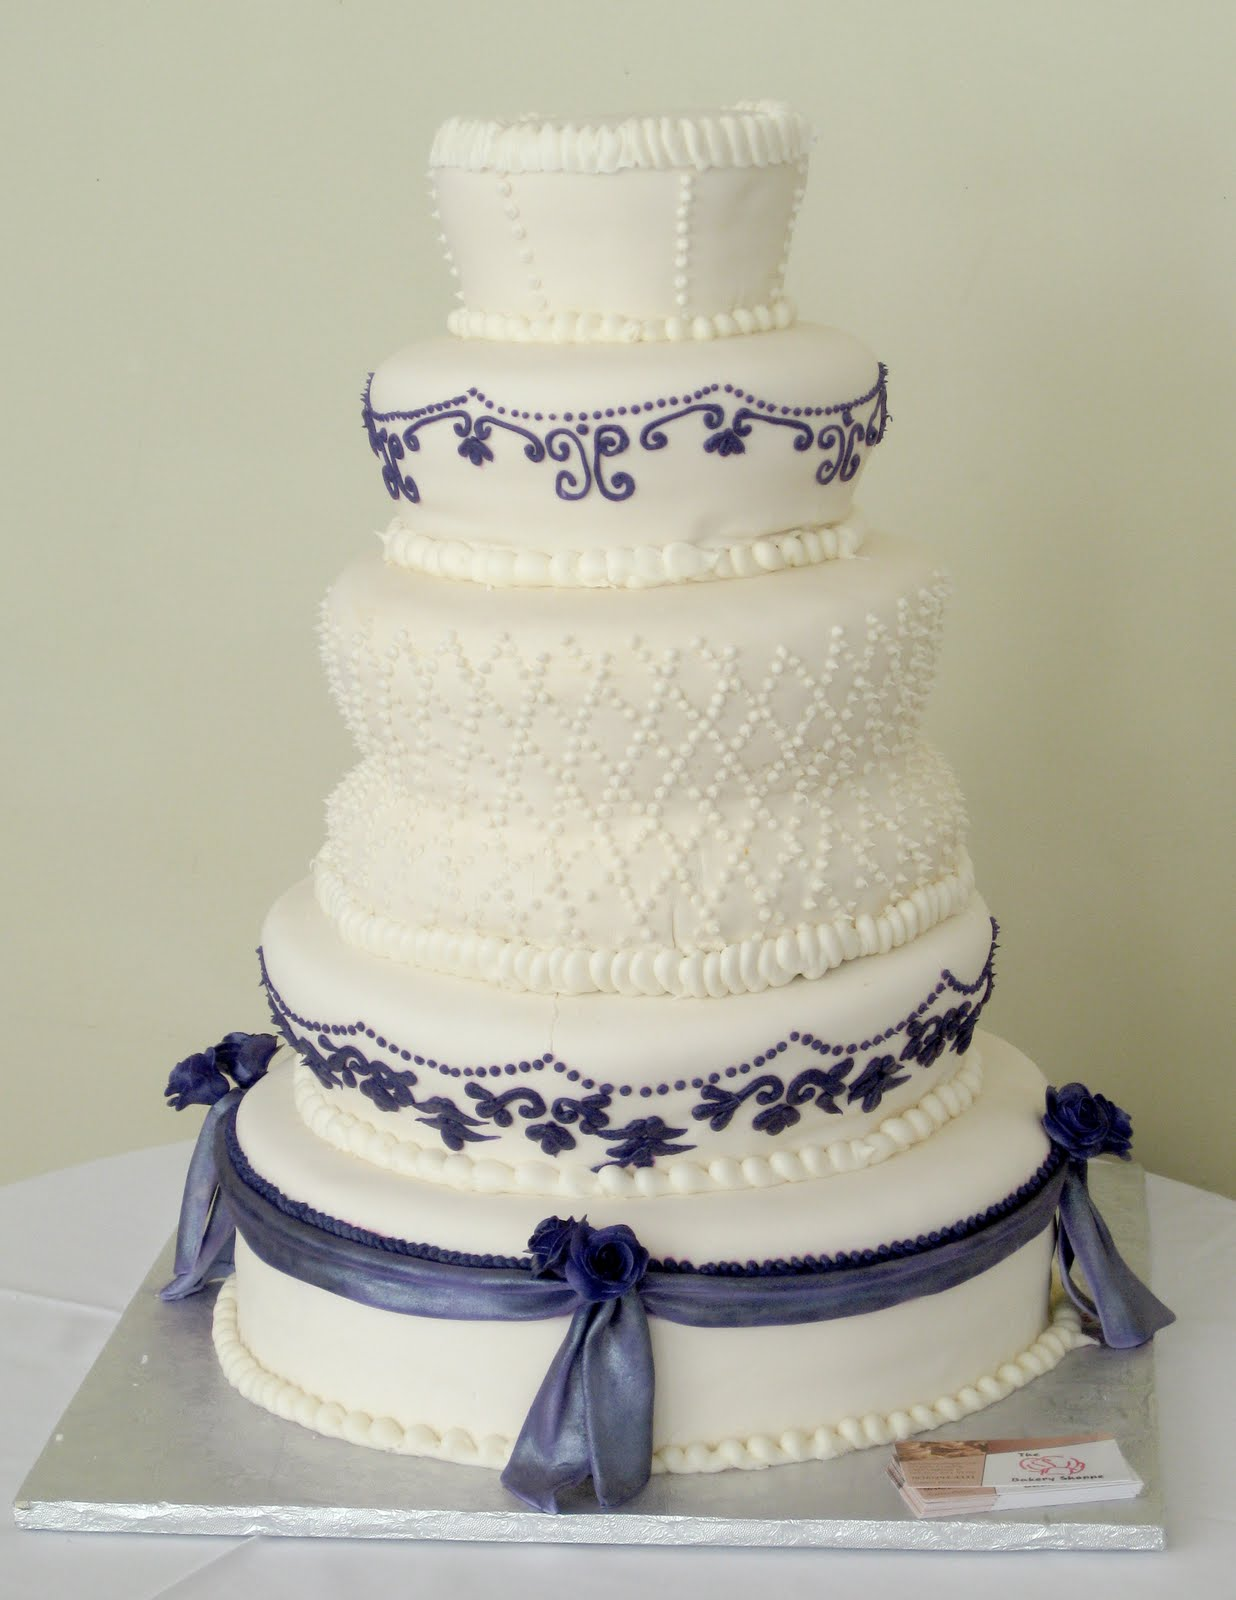 Funny anniversary cake quotes - Funny Quotes About Wedding Cake Bridal Cake Quotes Quotesgram